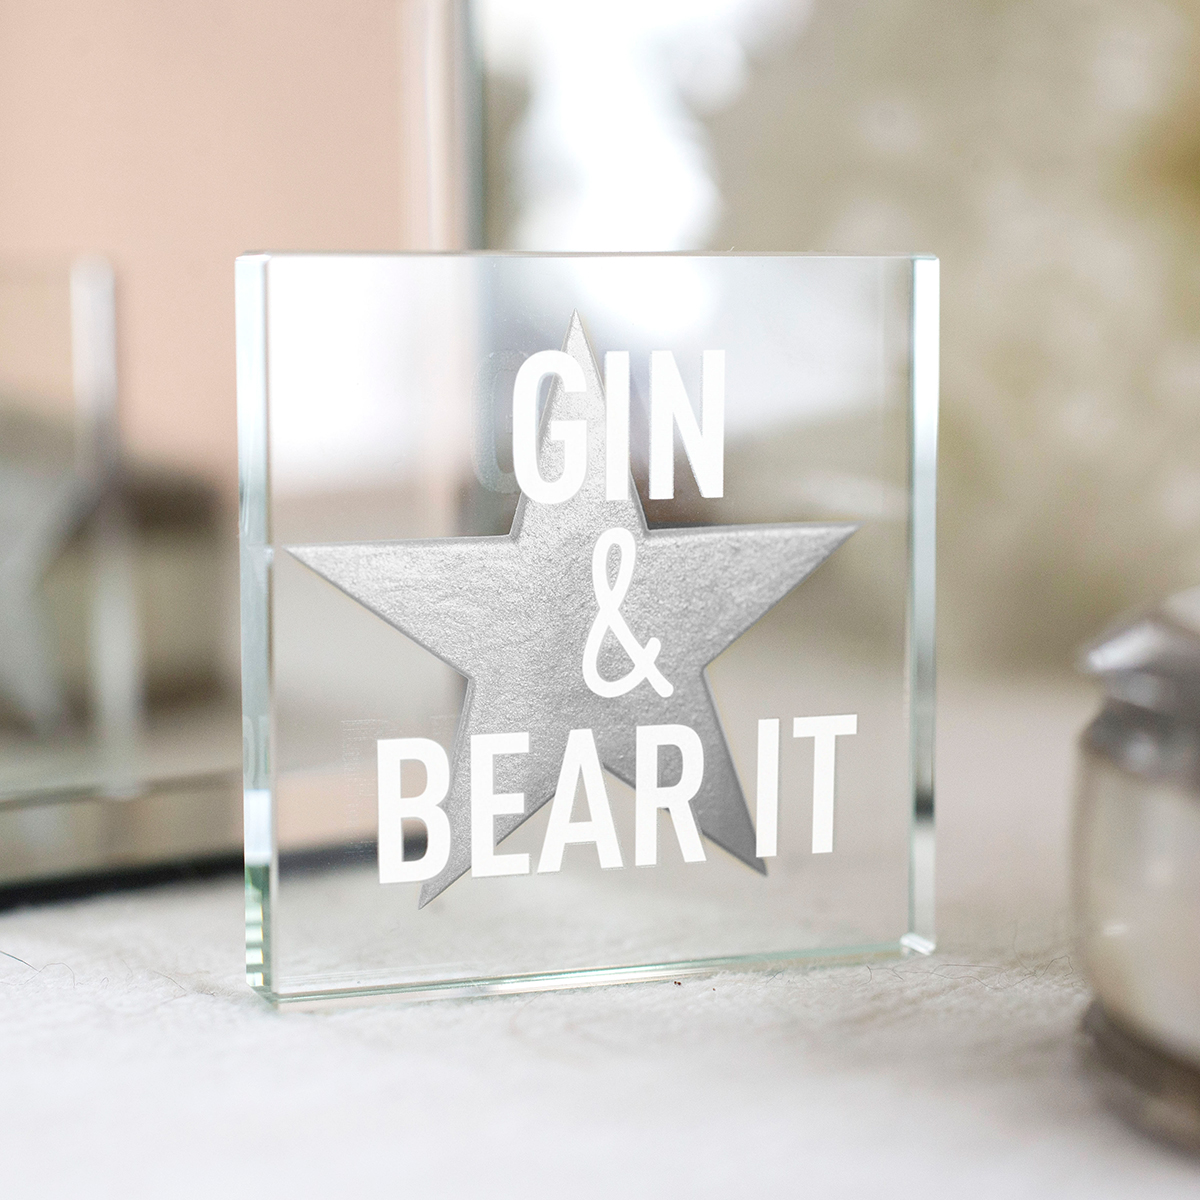 Spaceform Mini Glass Token - Gin & Bear It